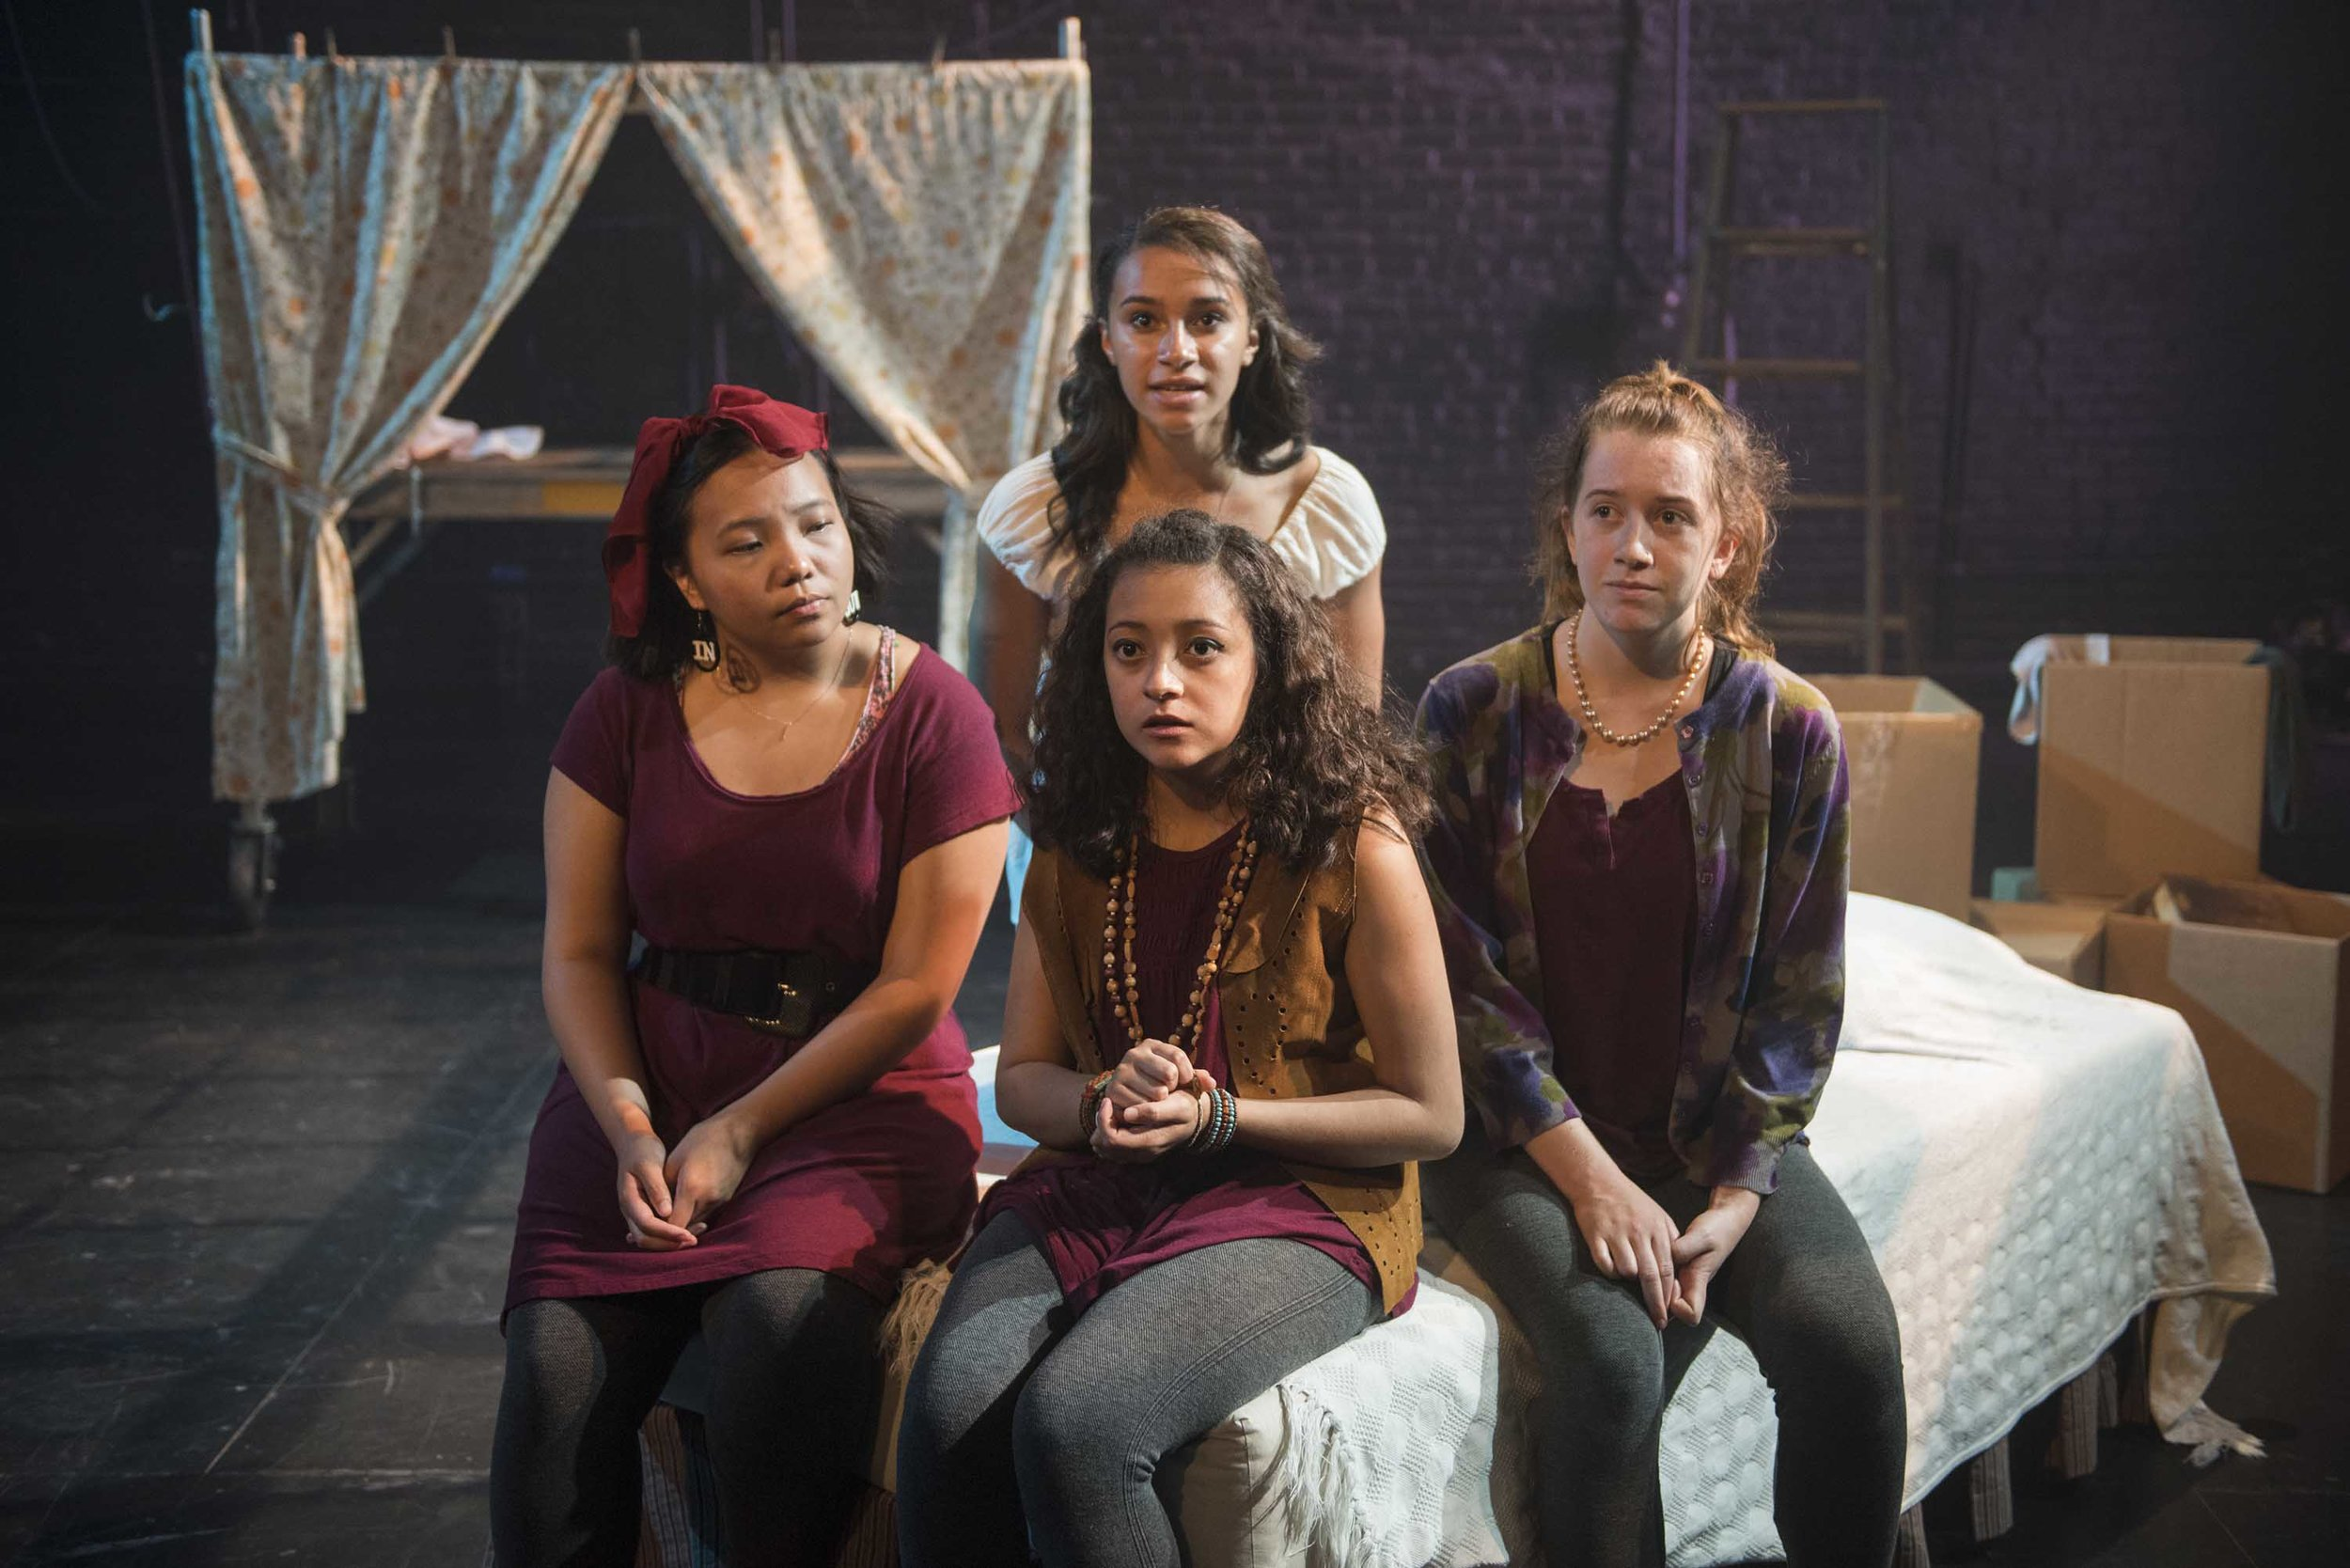 Milwaukee Repertory Theater's Professional Training Institute Ensemble presents the World Premiere of Lost Girl by Kimberly Belflower in the Stiemke Studio from July 19 to July 22, 2018. Left to Right: Mainyia Xiong, Juliana Garcia-Malacara, Reese Parish and Maricella Kessenich. Photo by Michael Brosilow.